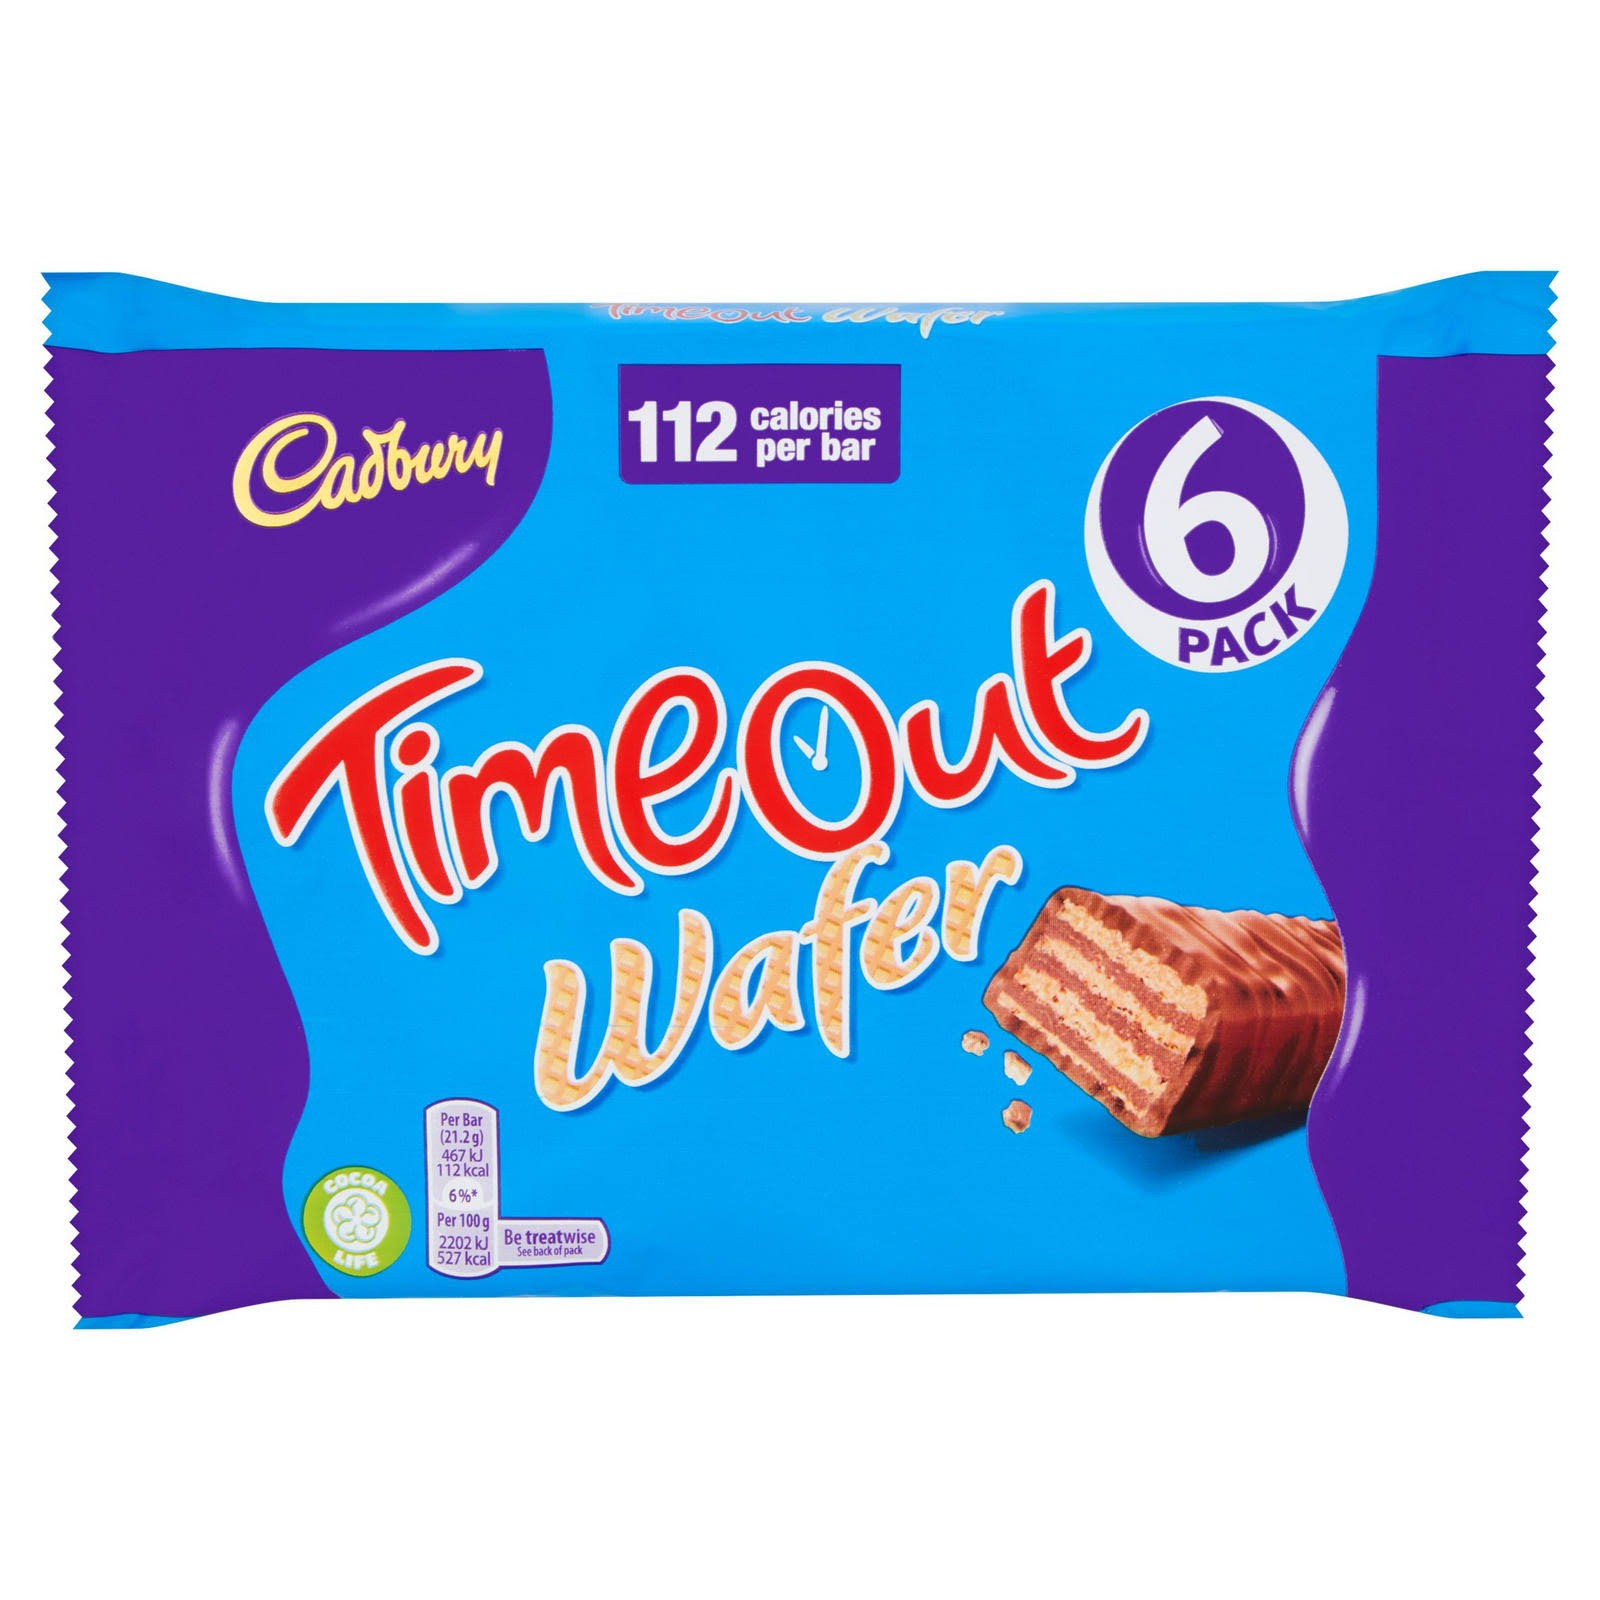 Cadbury Timeout Wafer - 6 Pack, 127.2g